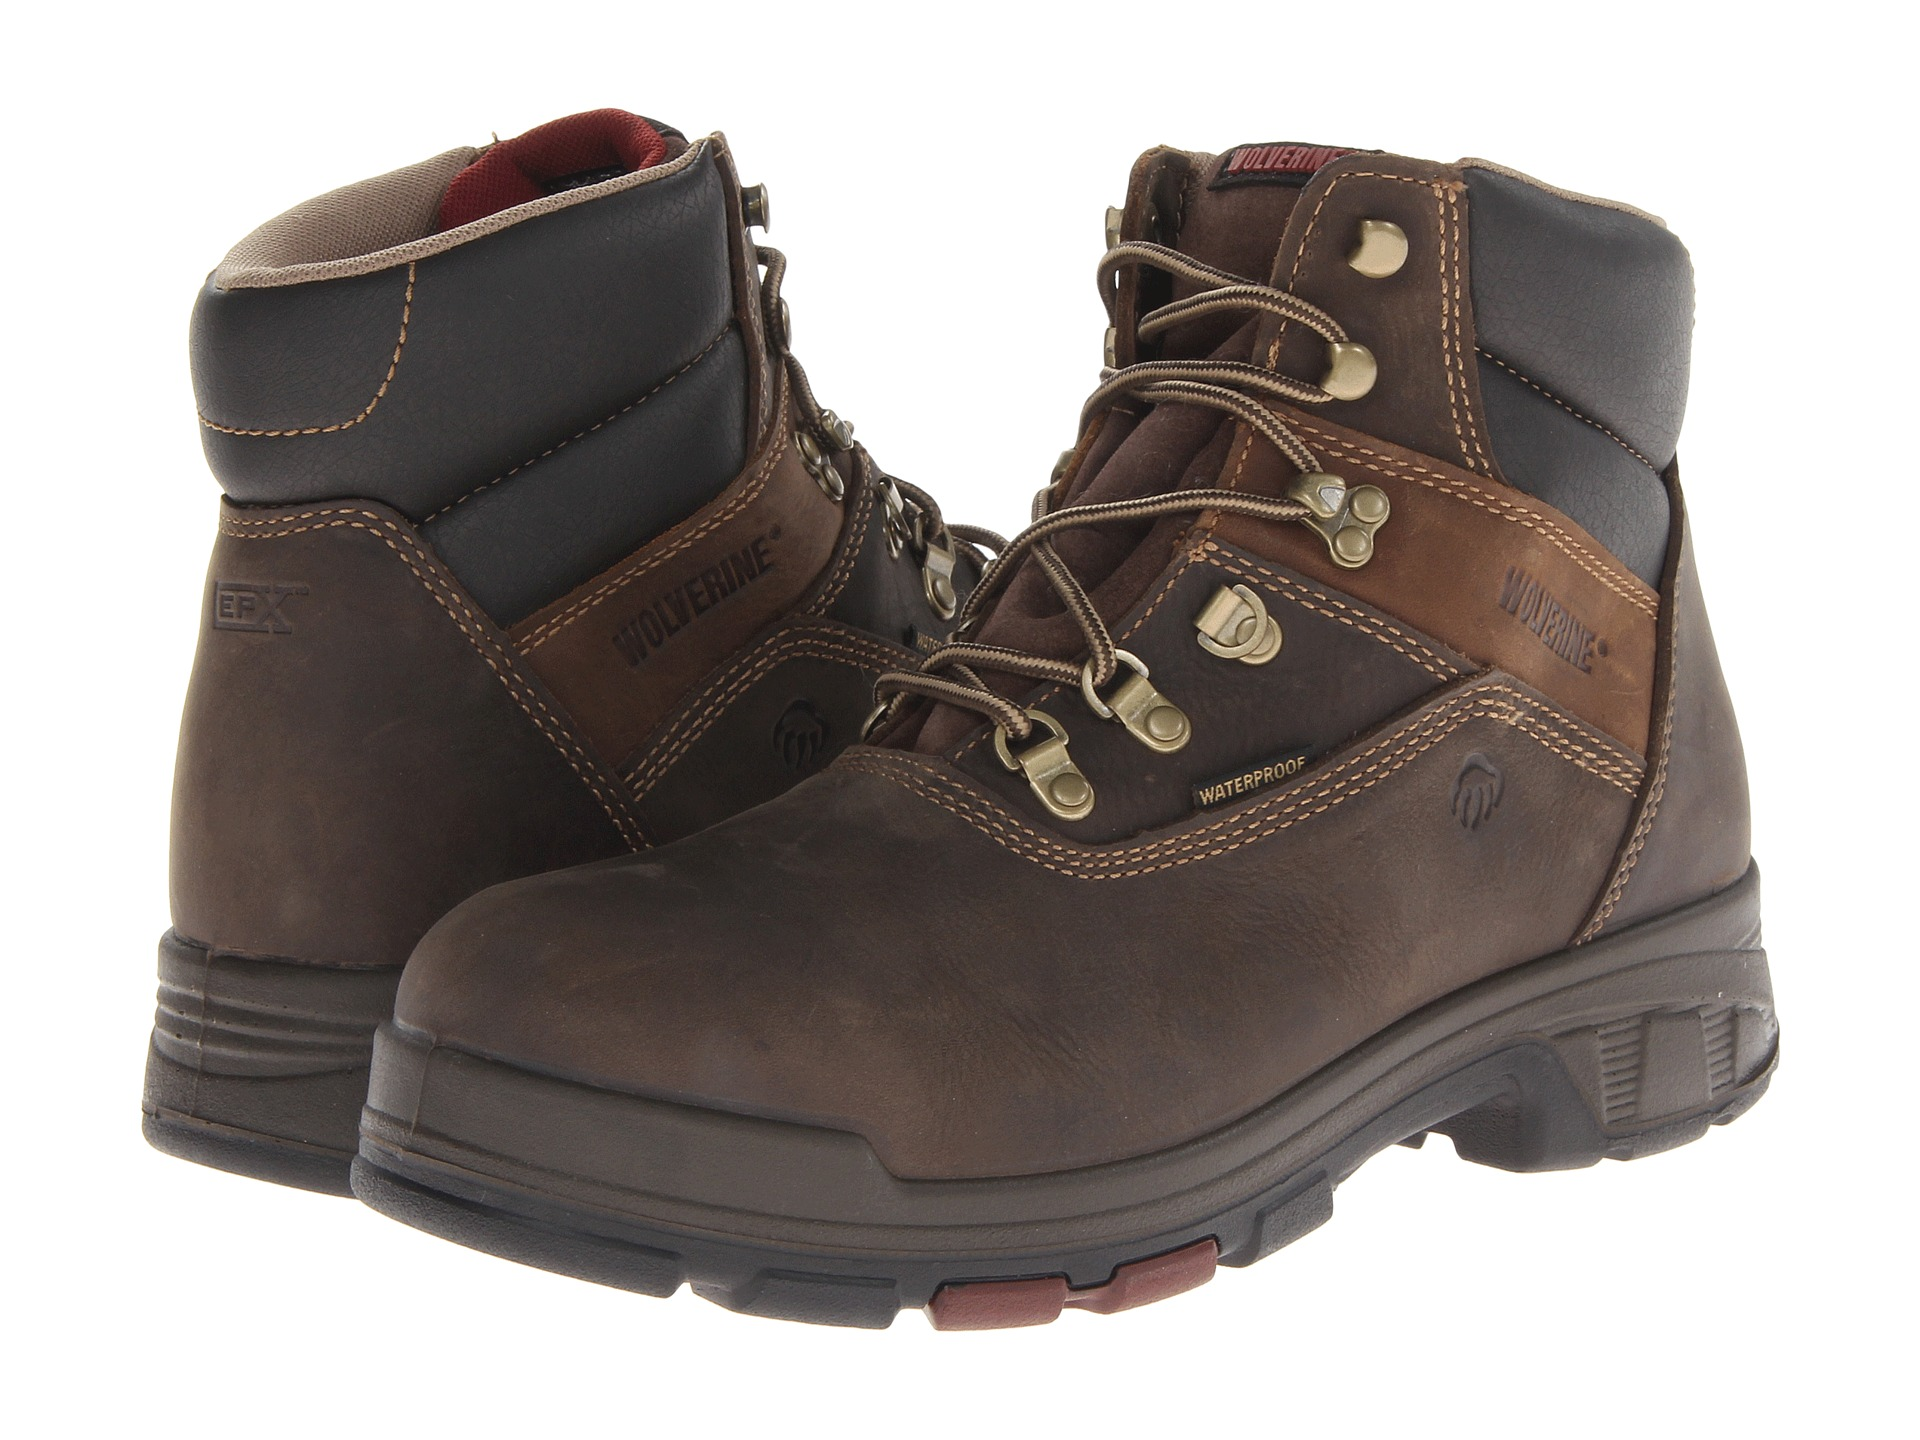 """Wolverine Cabor EPX™ PC Dry Waterproof 6"""" Boot - Soft Toe at 6pm.com"""